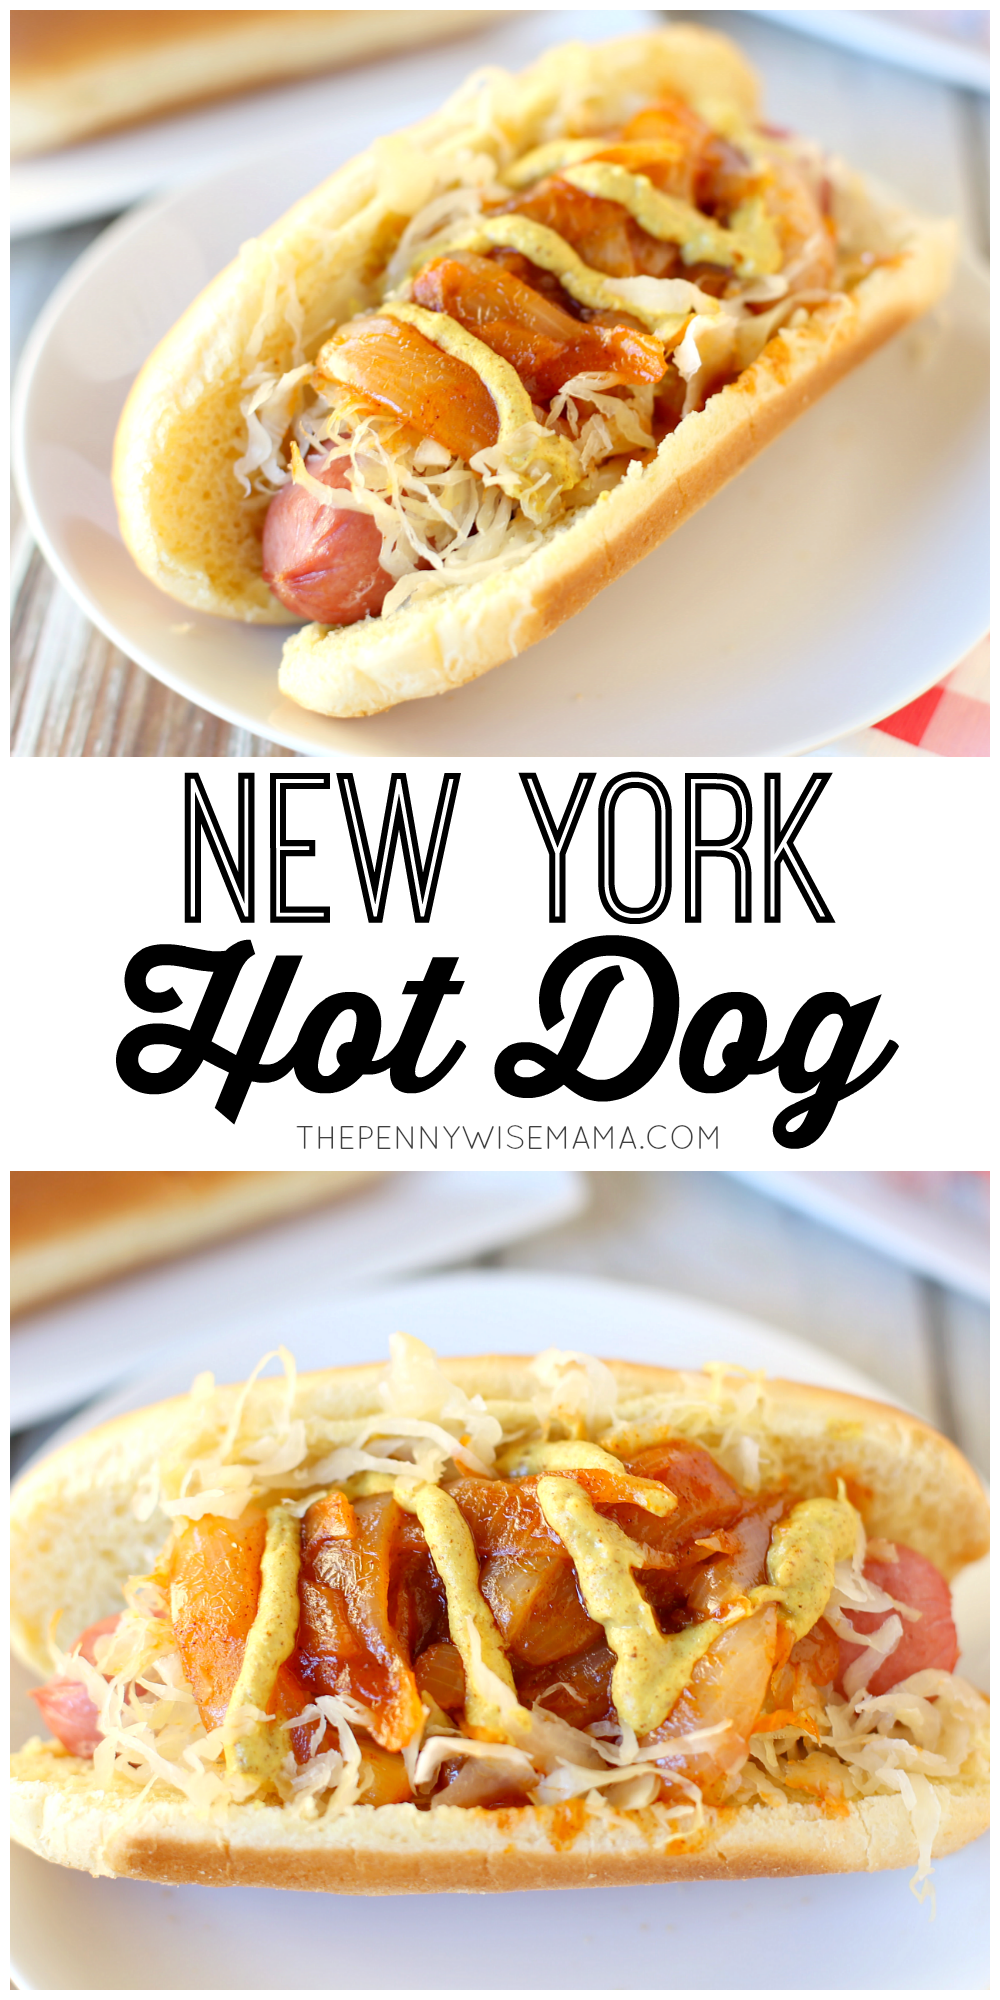 New York Style Hot Dog - this simple & delicious recipe is similar to the pushcart hot dog featuring onion sauce and sauerkraut.